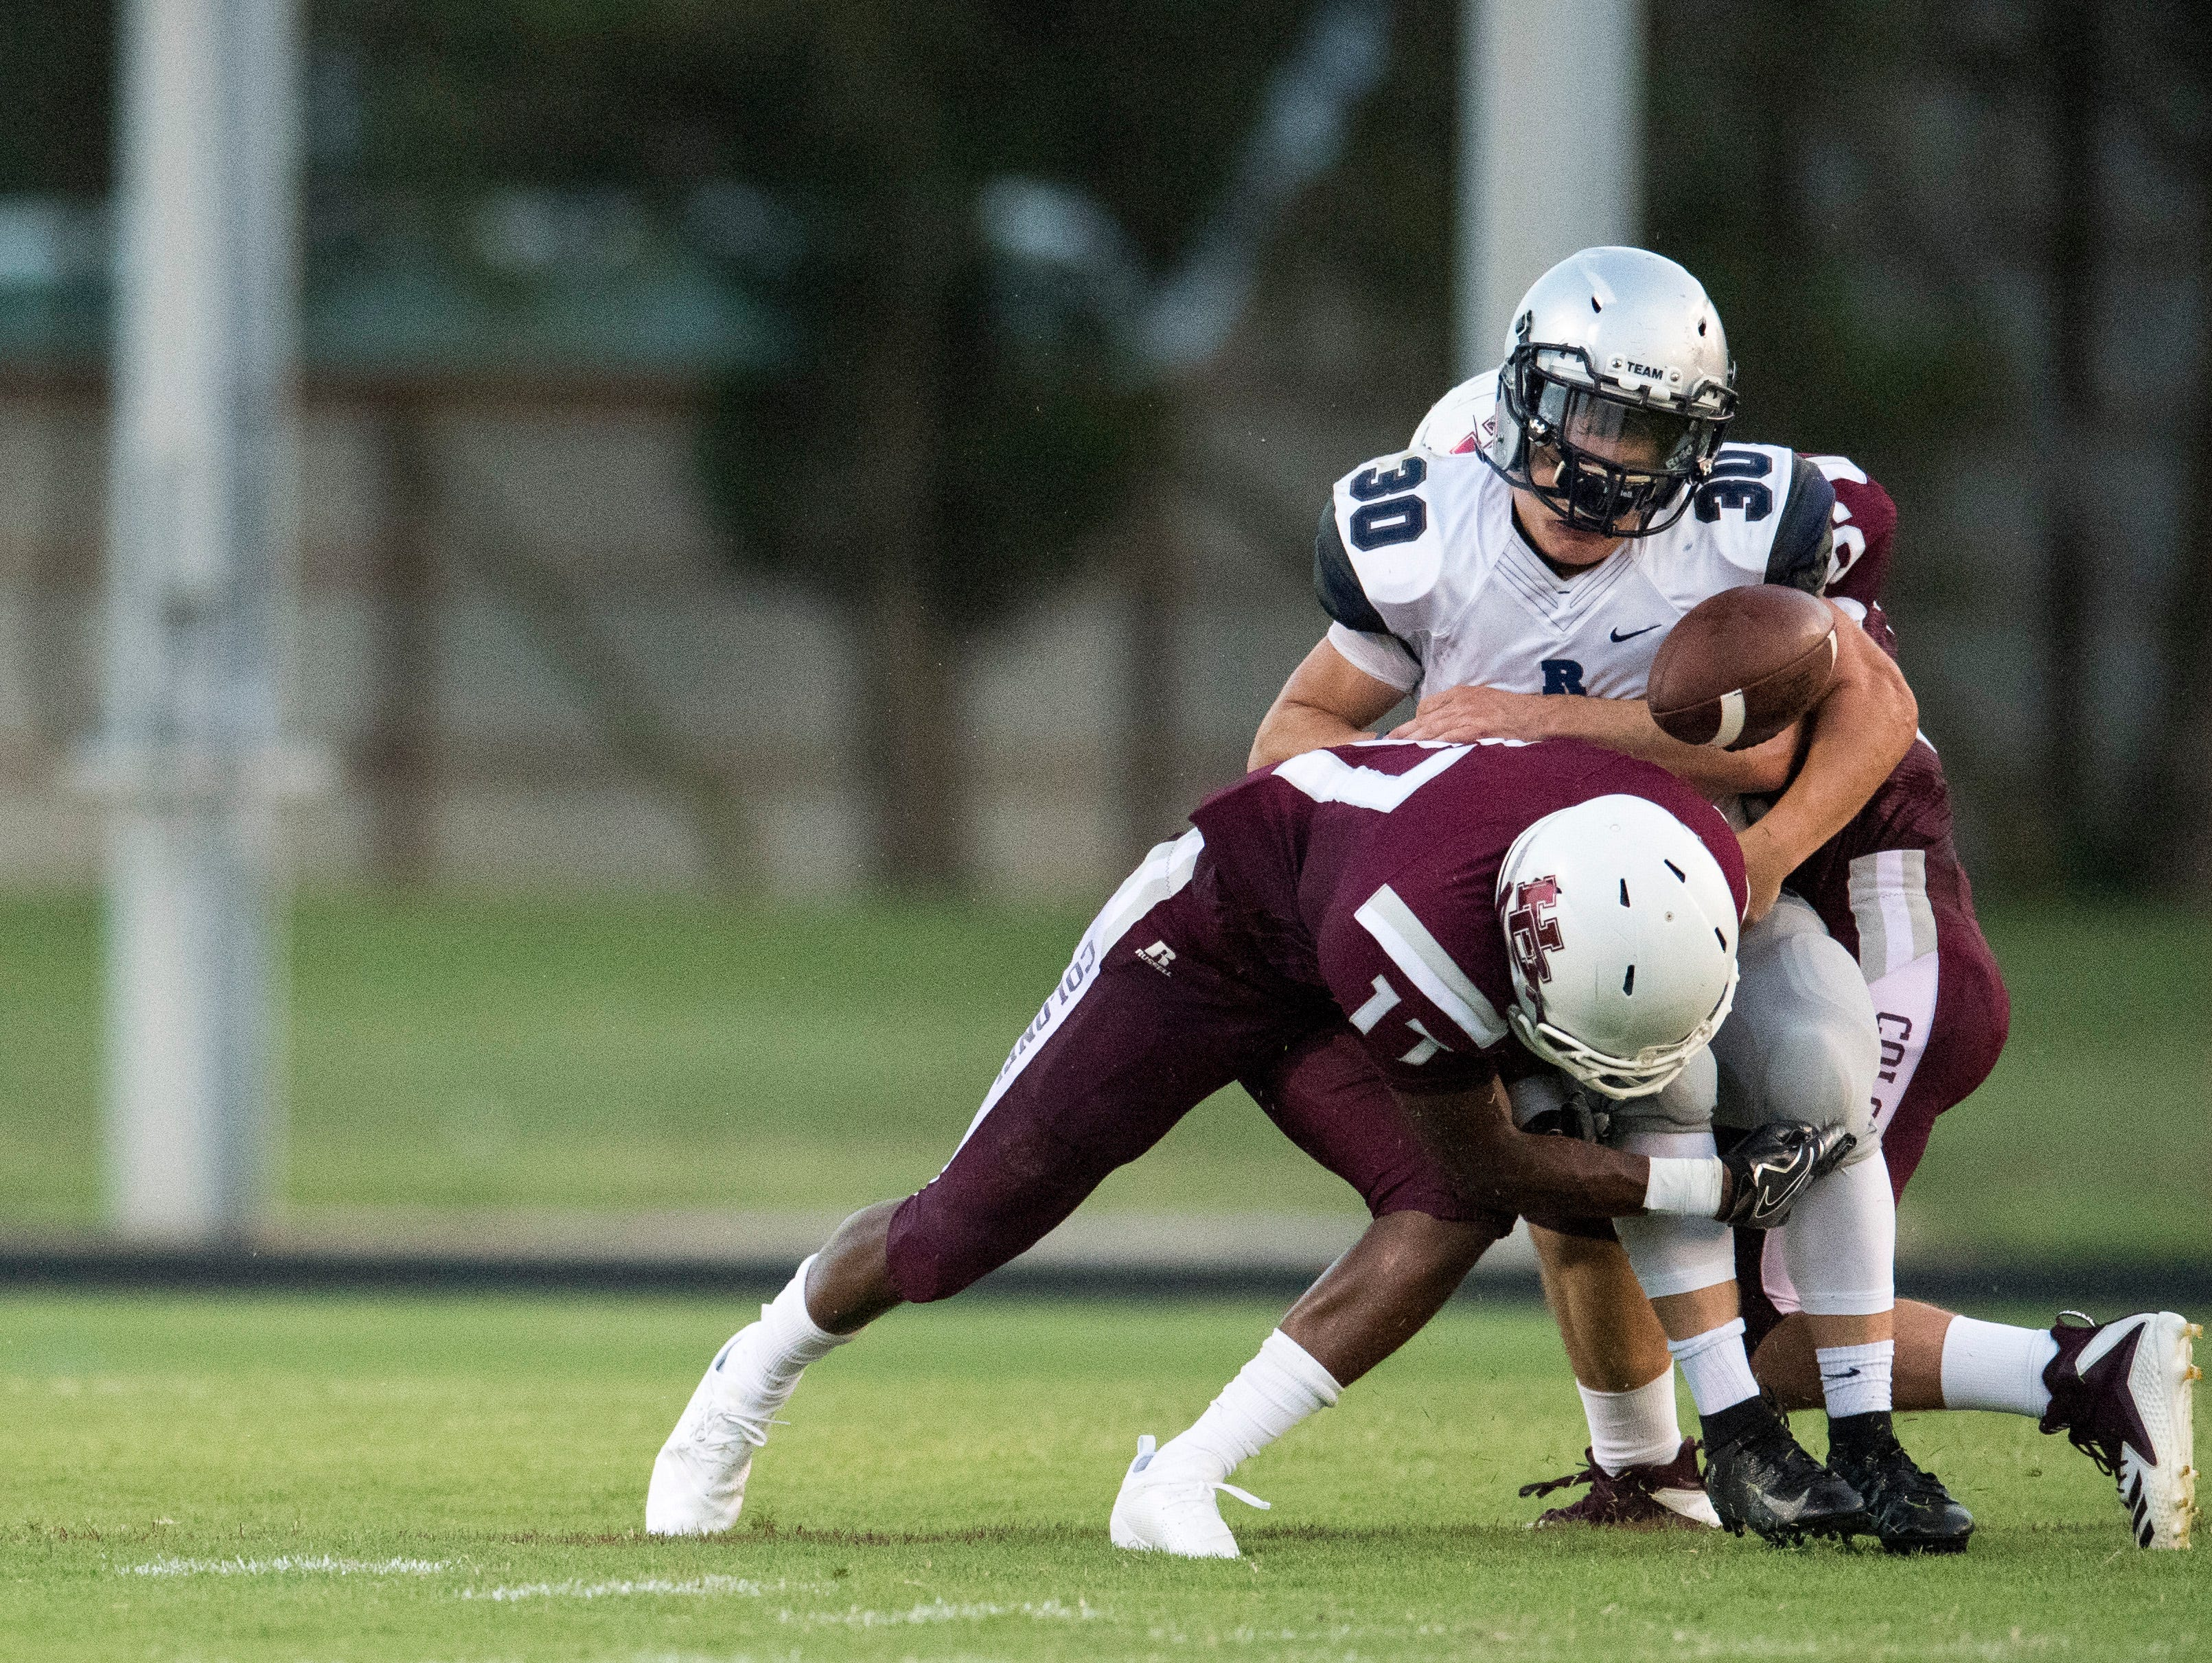 The Henderson Colonels Isaiah Easley (17) tackles Reitz's Alex Mitchell (30) causing Mitchell to loose the ball during the Reitz vs Henderson County game at Colonel Stadium Friday, August 17, 2018. The Panthers defeated the Colonels 41-35 in the season opening game.